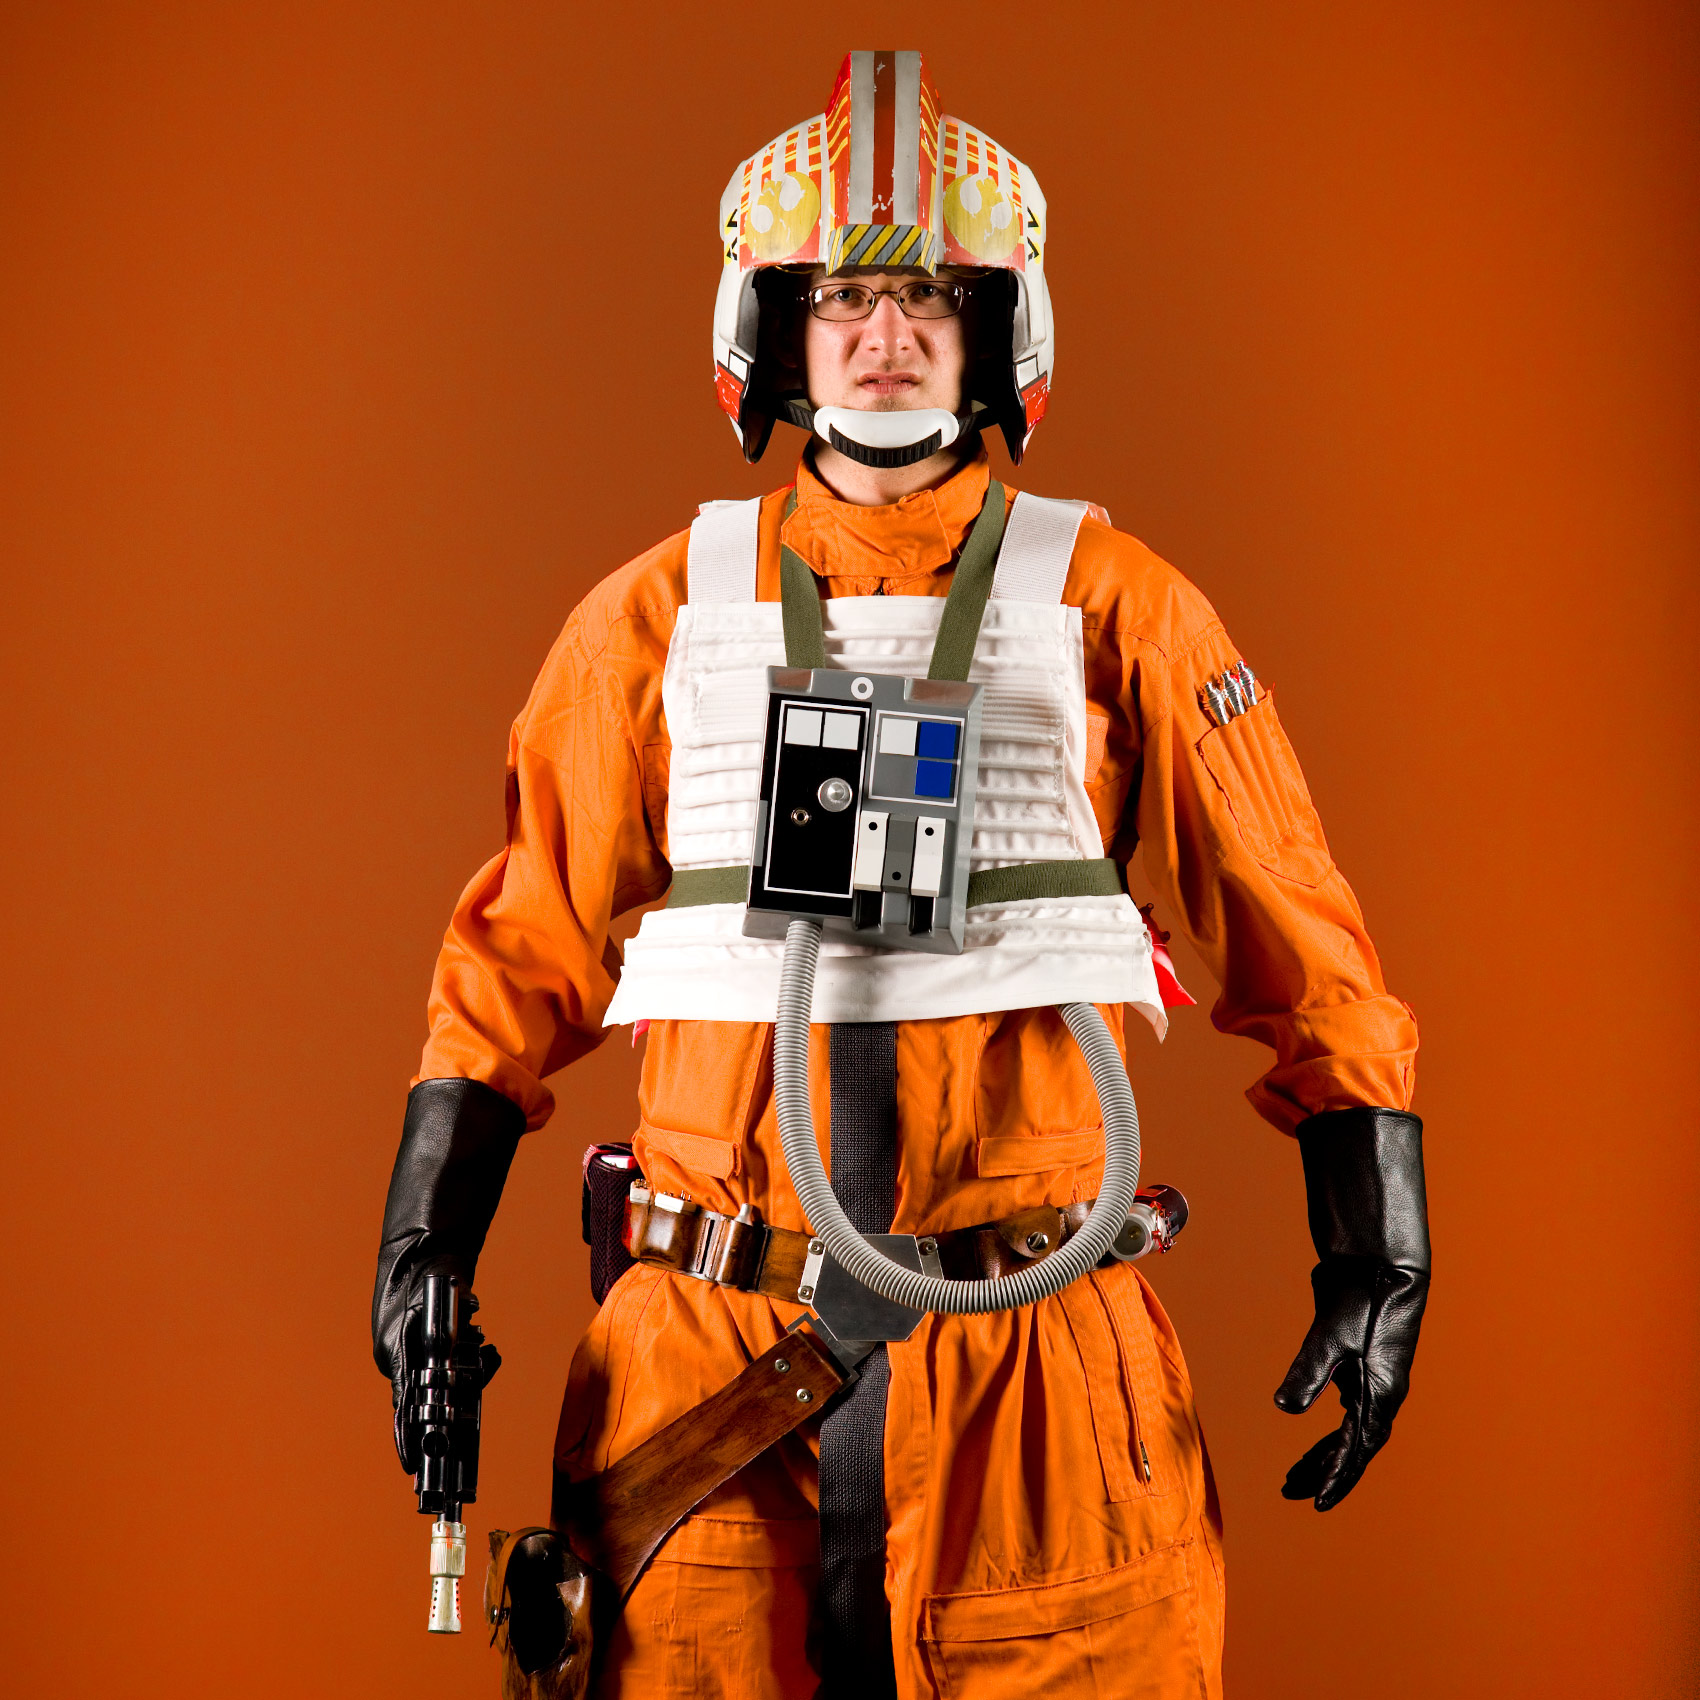 a-portrait-of-a-man-dressed-as-an-x-wing-fighter-pilot-at-toronto-fan-expo